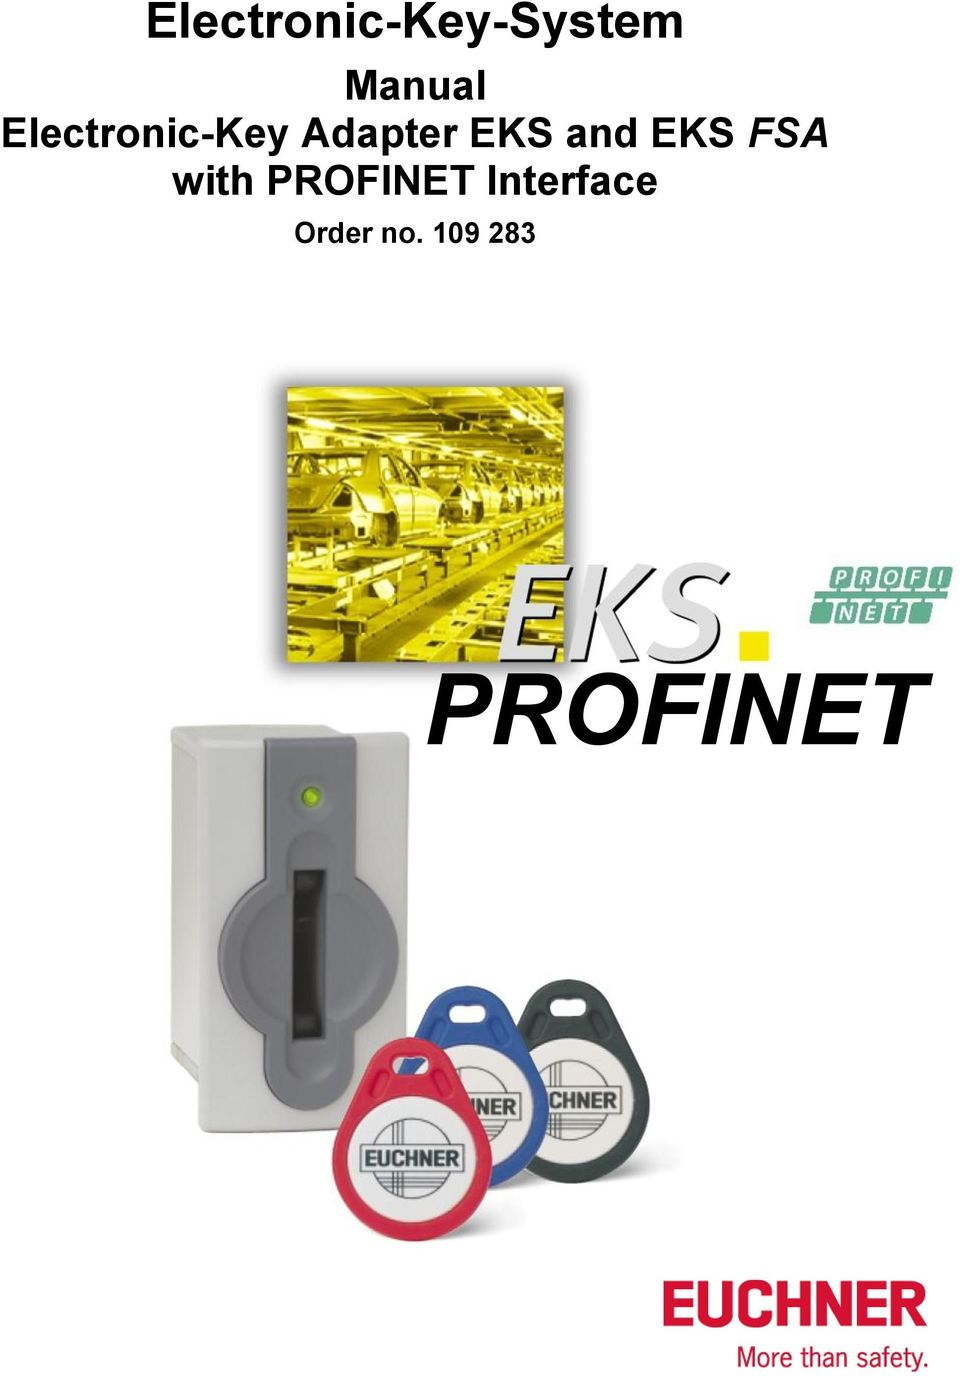 and EKS FSA with PROFINET